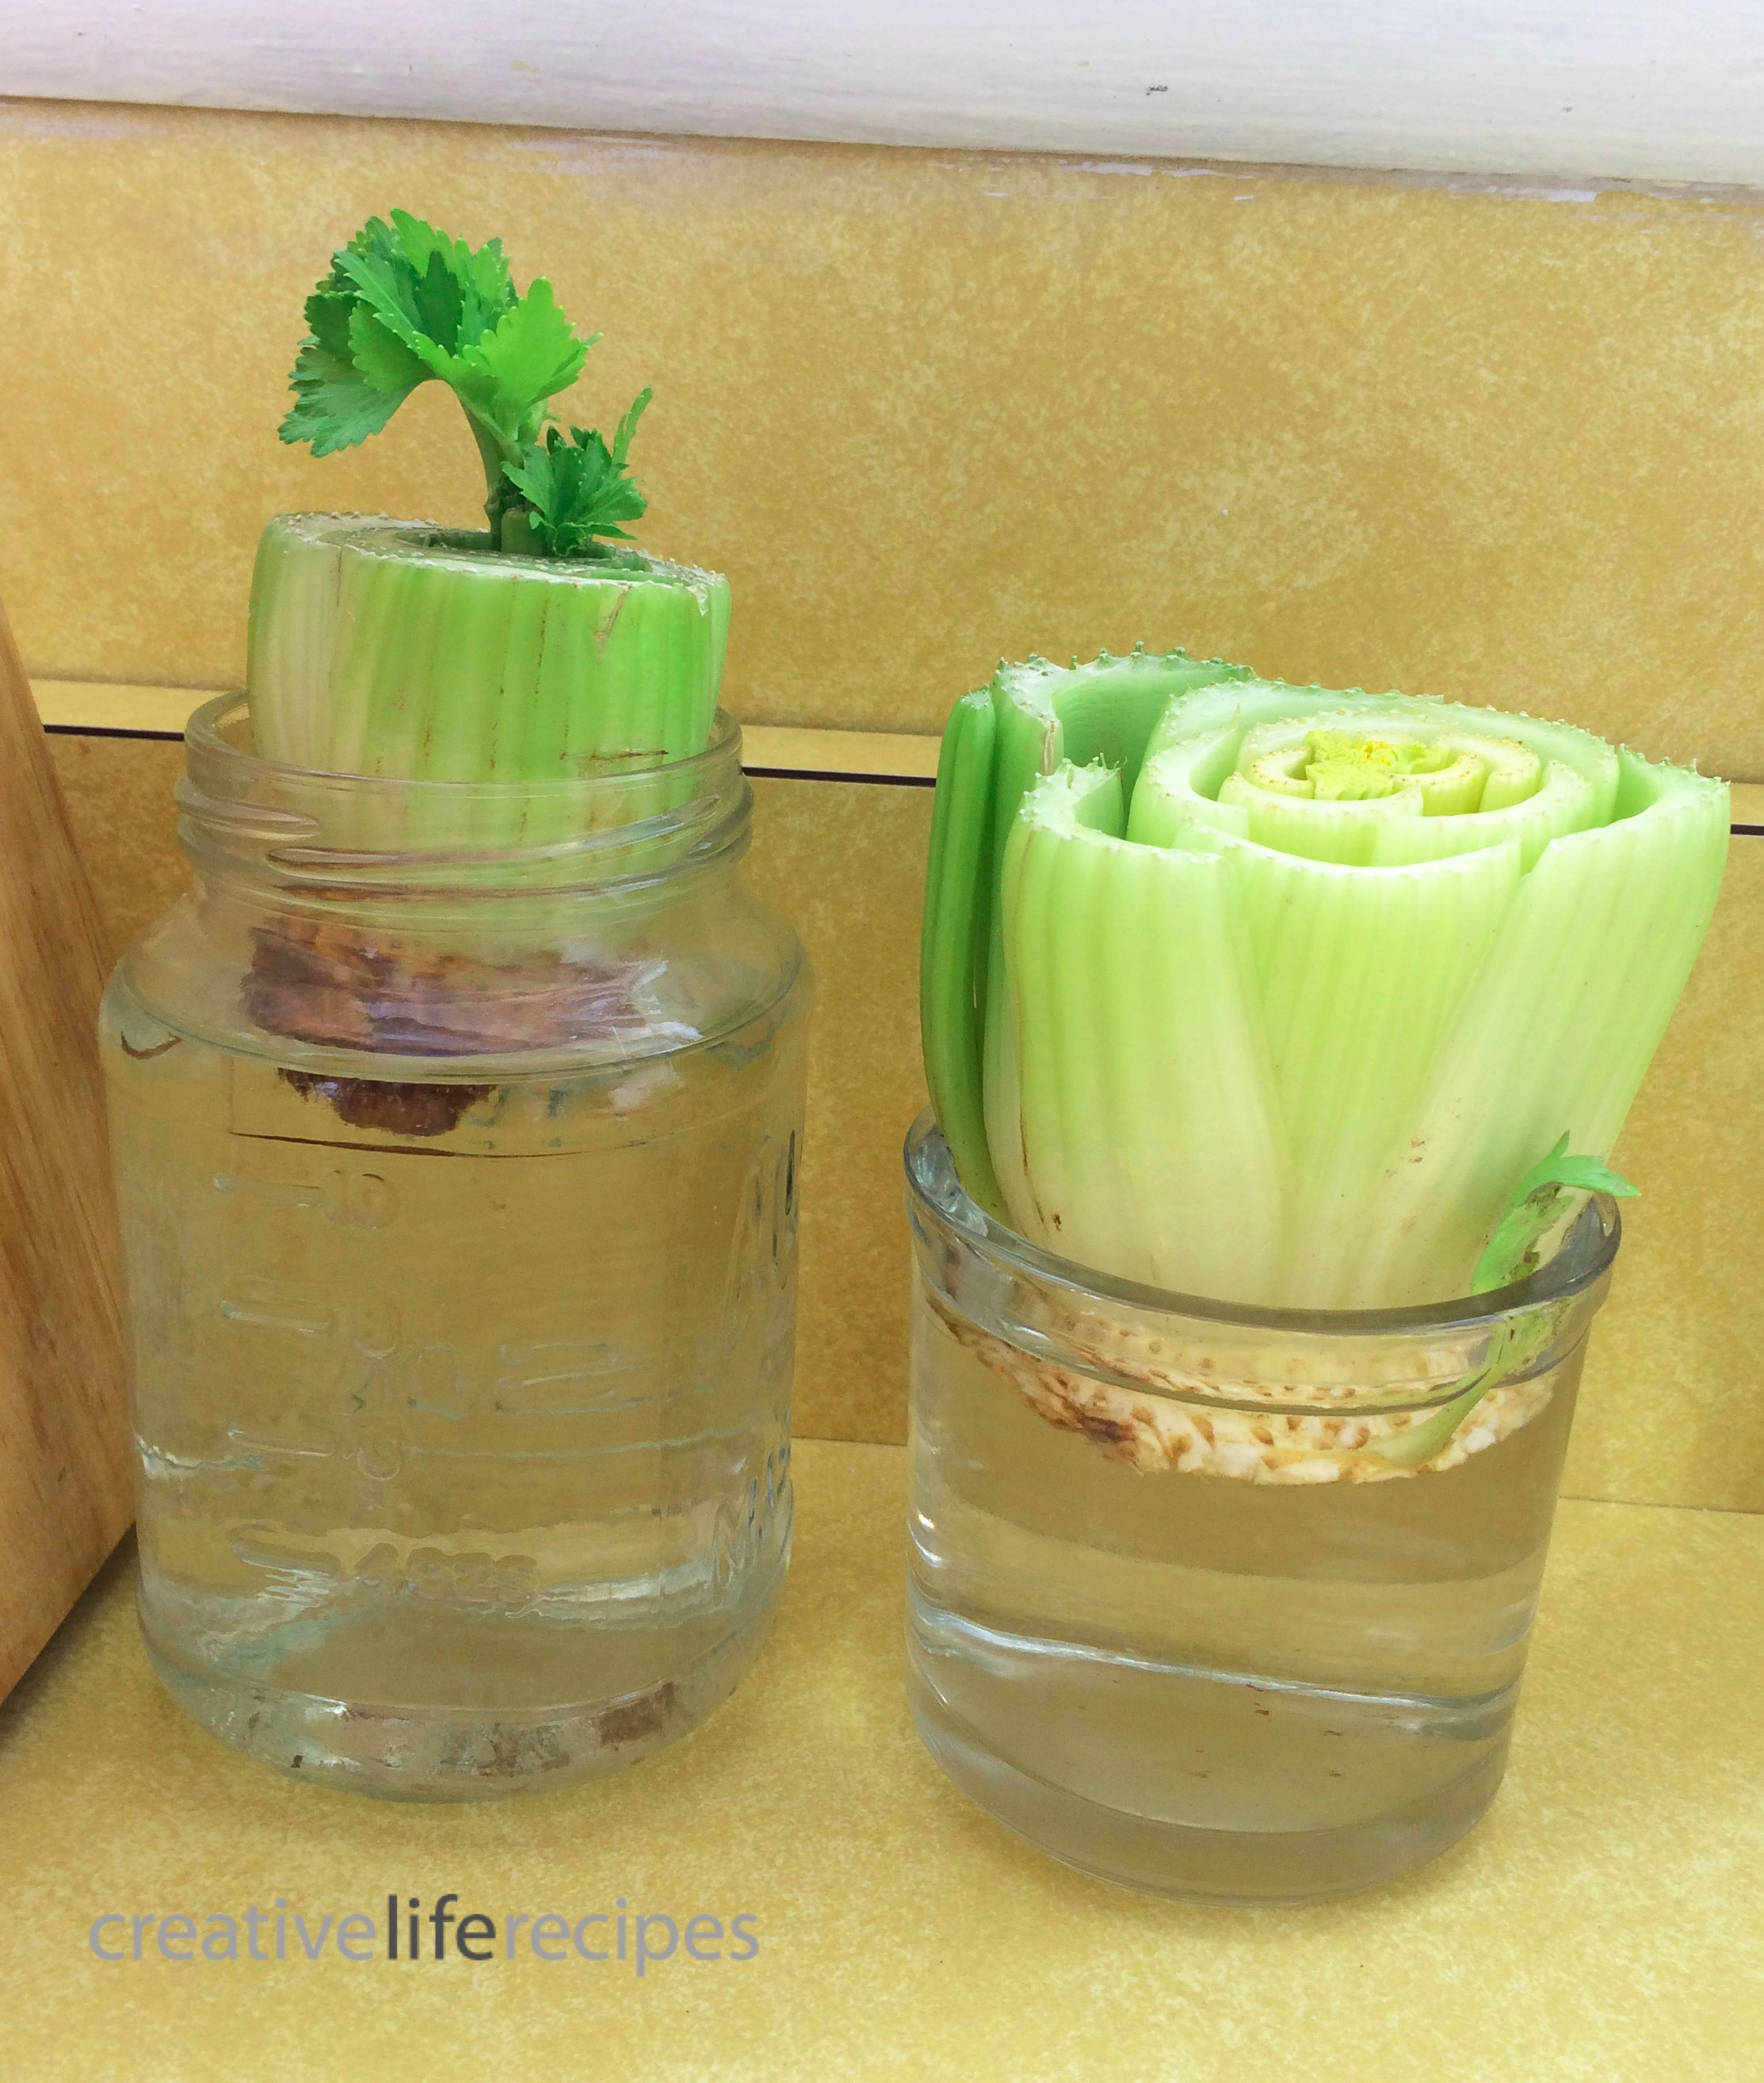 Regrow Celery Two Jars Creative Life Recipes